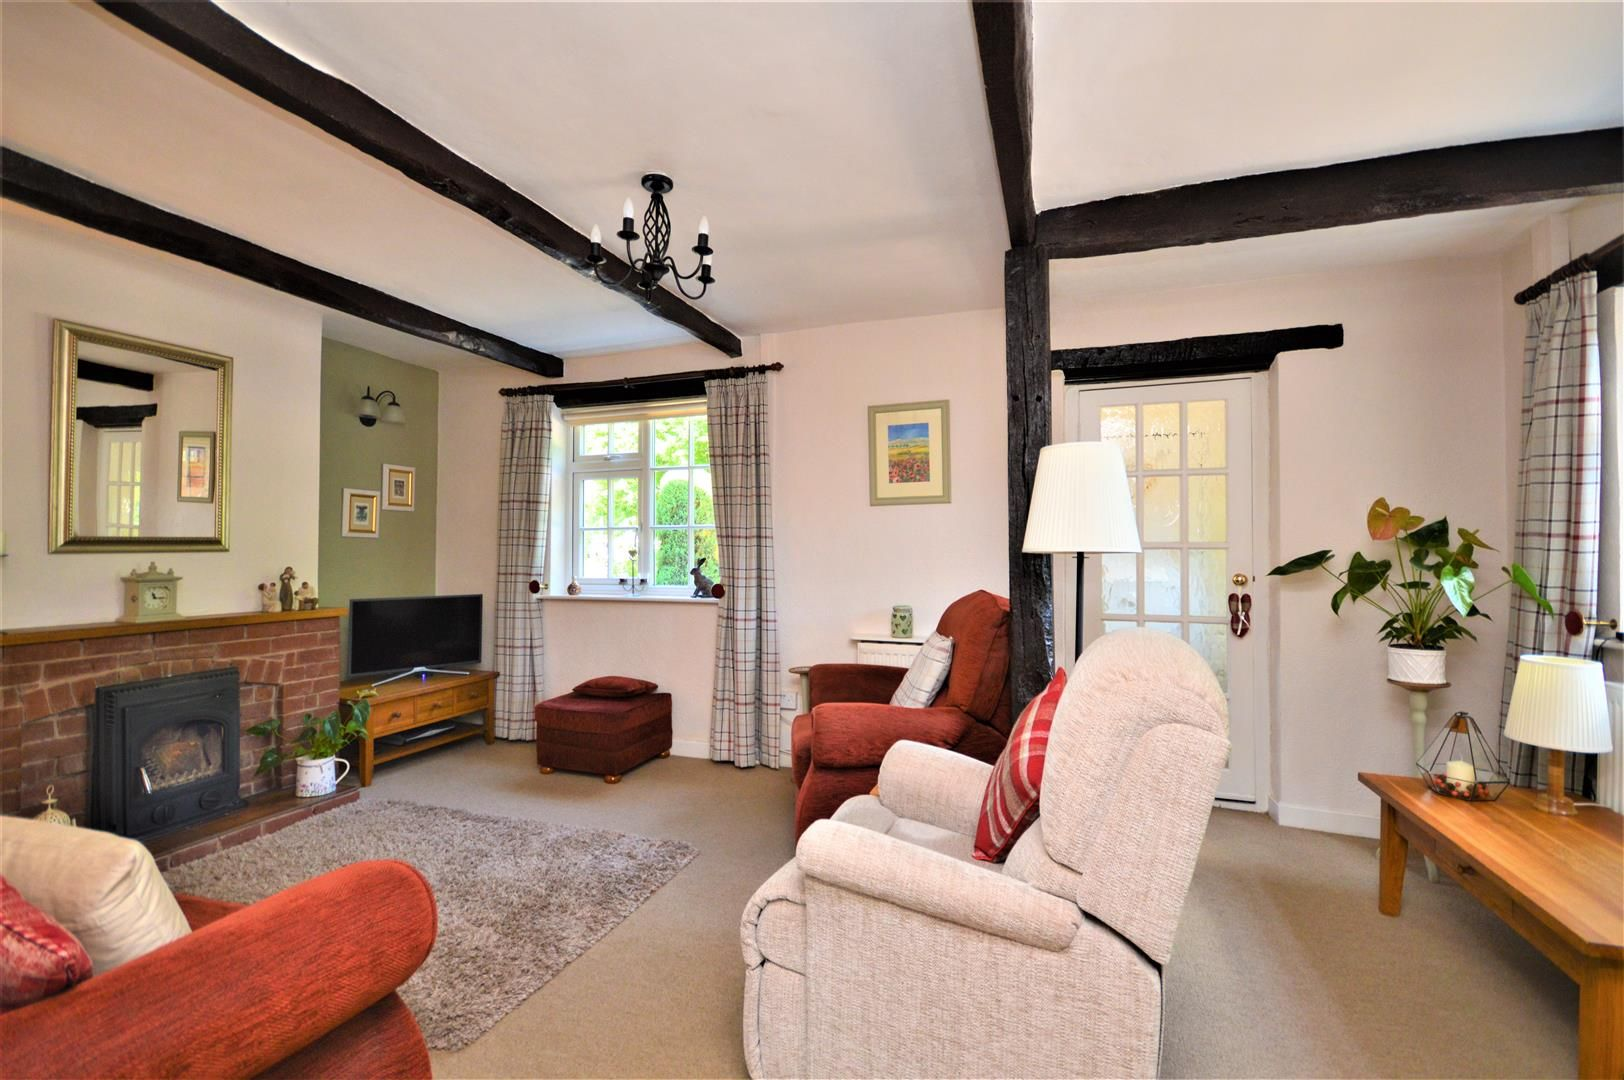 3 bed semi-detached for sale in Madley 9